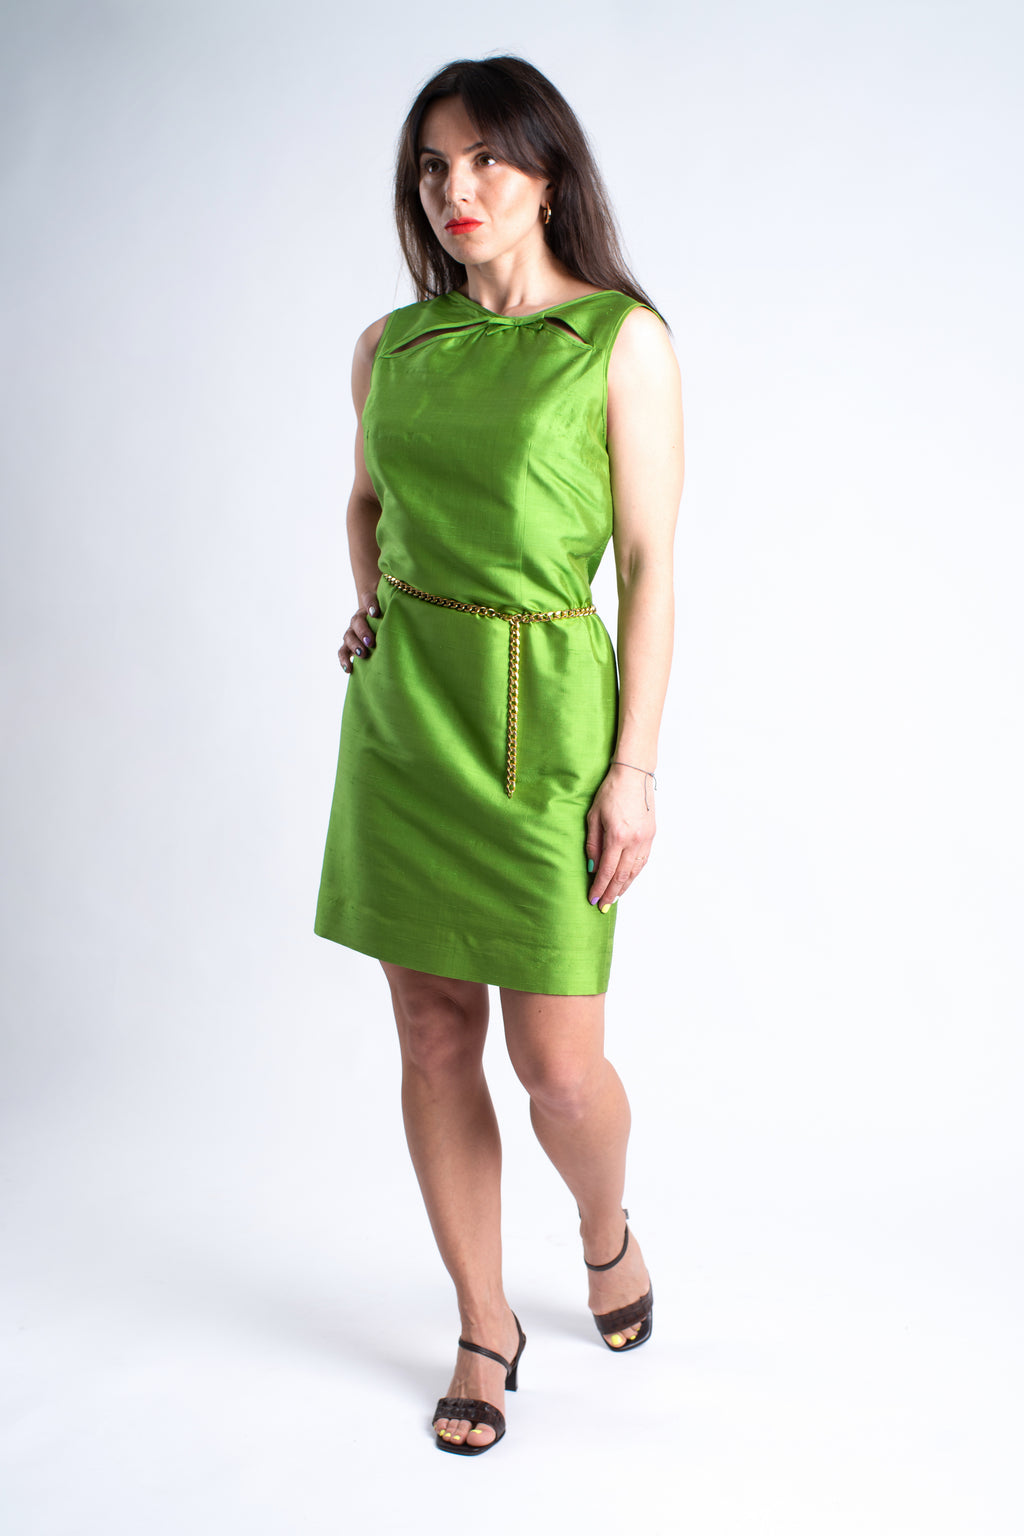 Moschino Cheap And Chic Green Silk Cocktail Dress, SIZE M